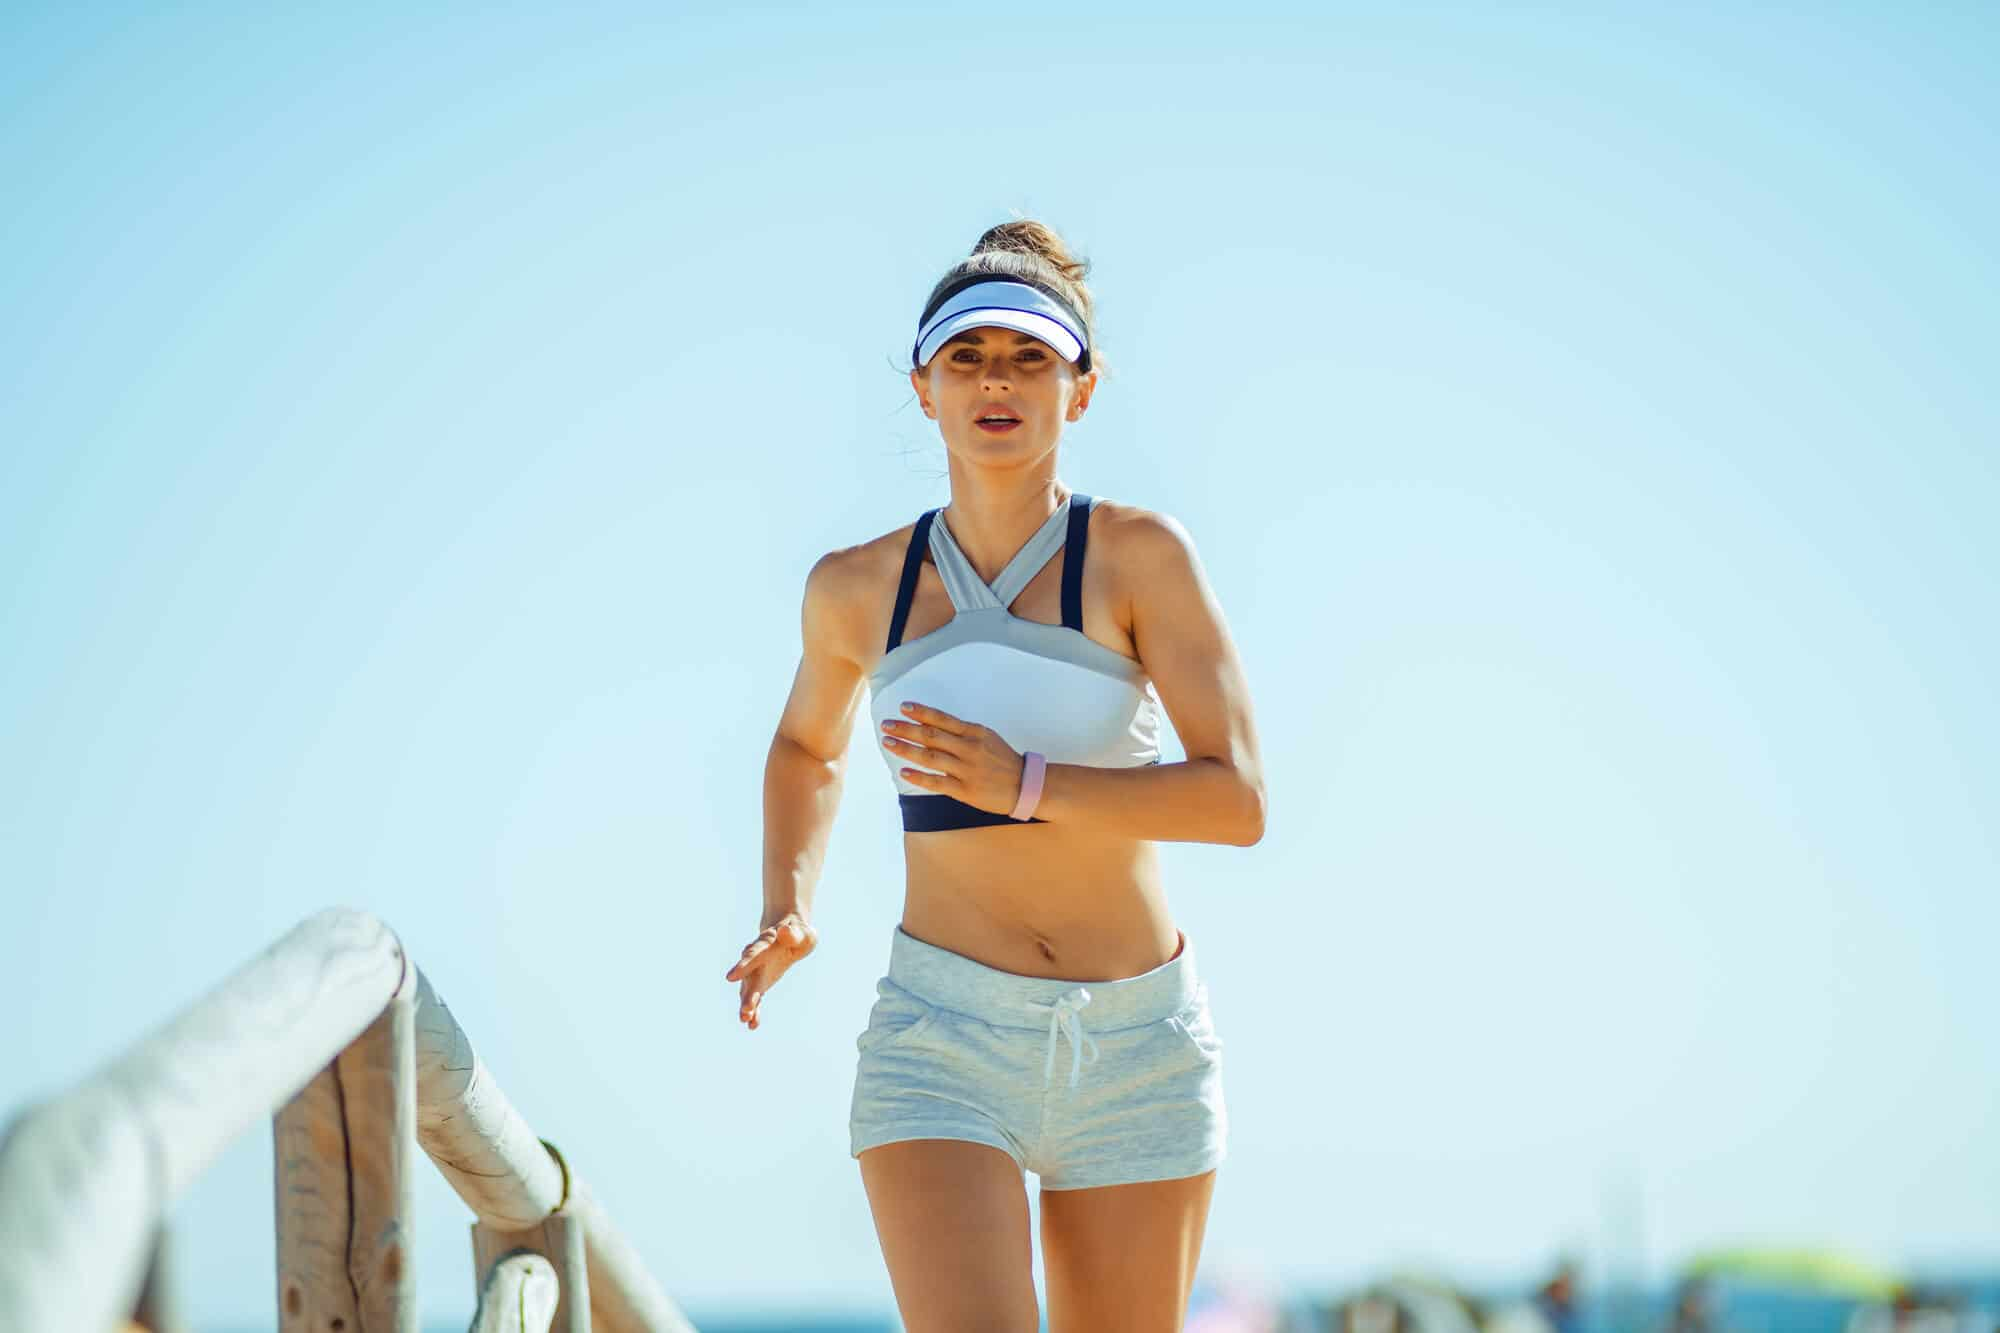 Best running tips for beginners and running techniques every beginner needs to know